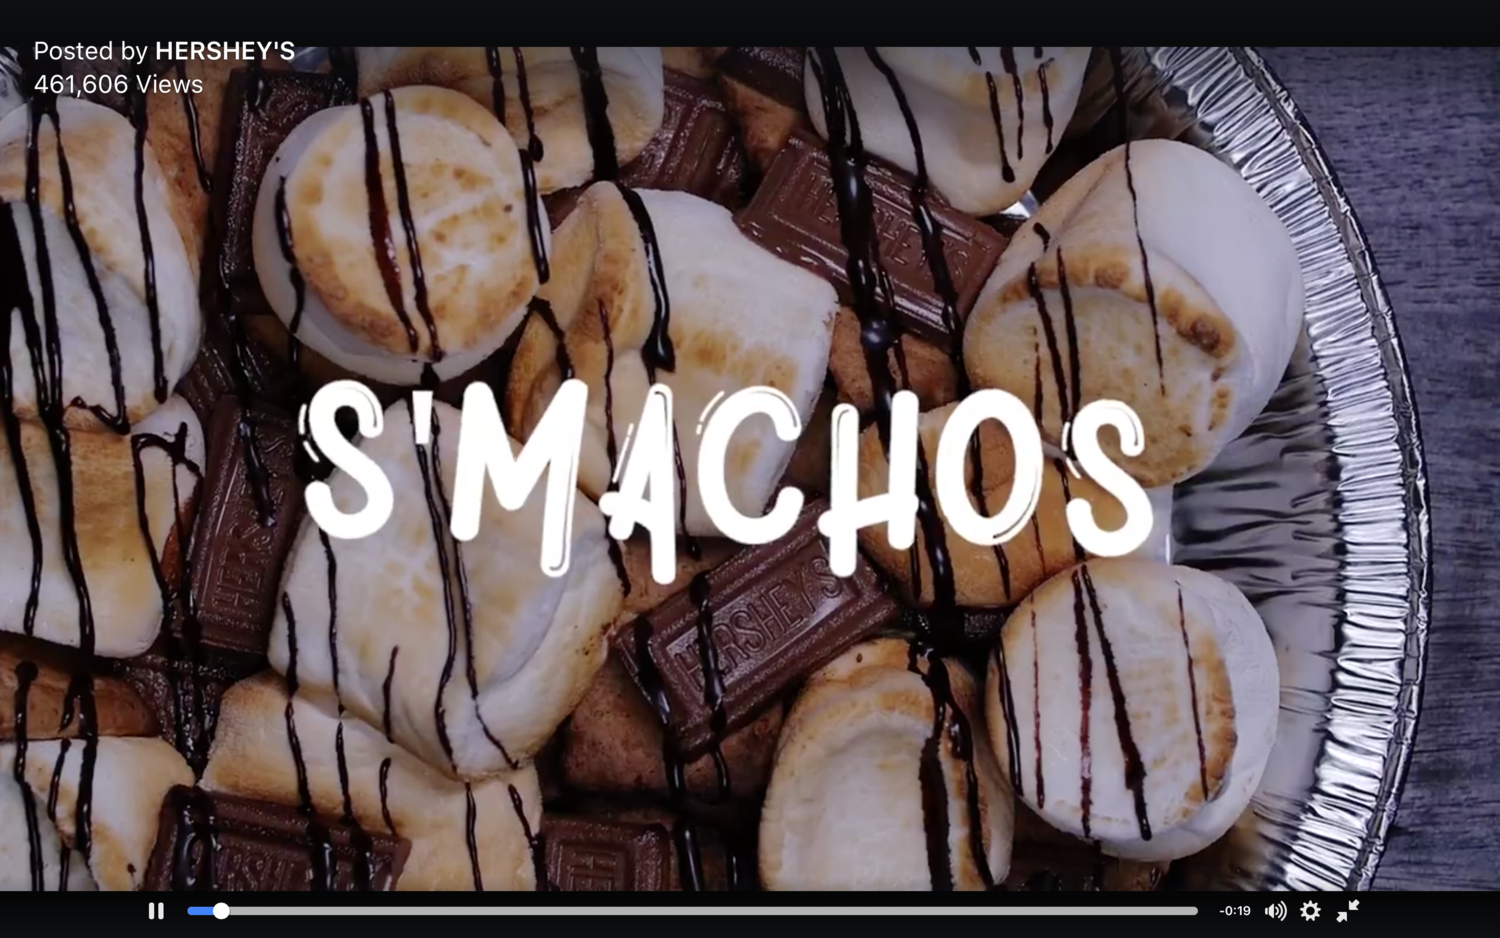 Hershey's S'mores x No Campfire Required Facebook Campaign   Game night can get s'majorly competitive. Keep calm and make S'mores s'machos.  #‎nocampfirerequired